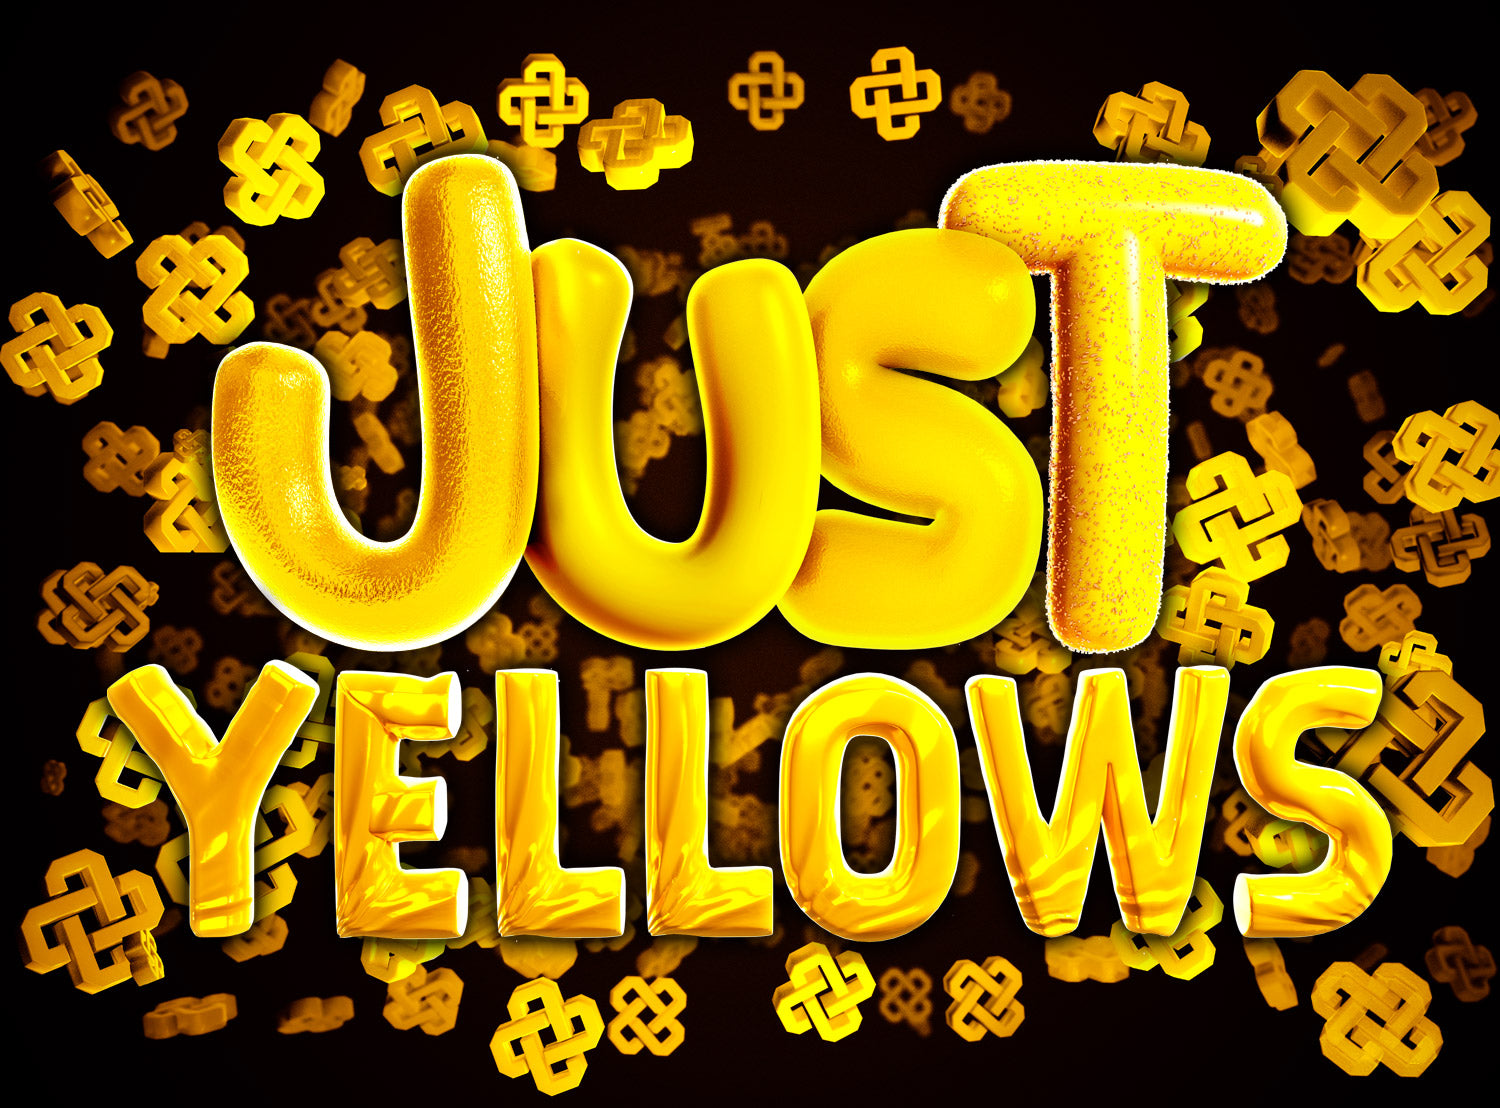 Image result for alt zero just yellows